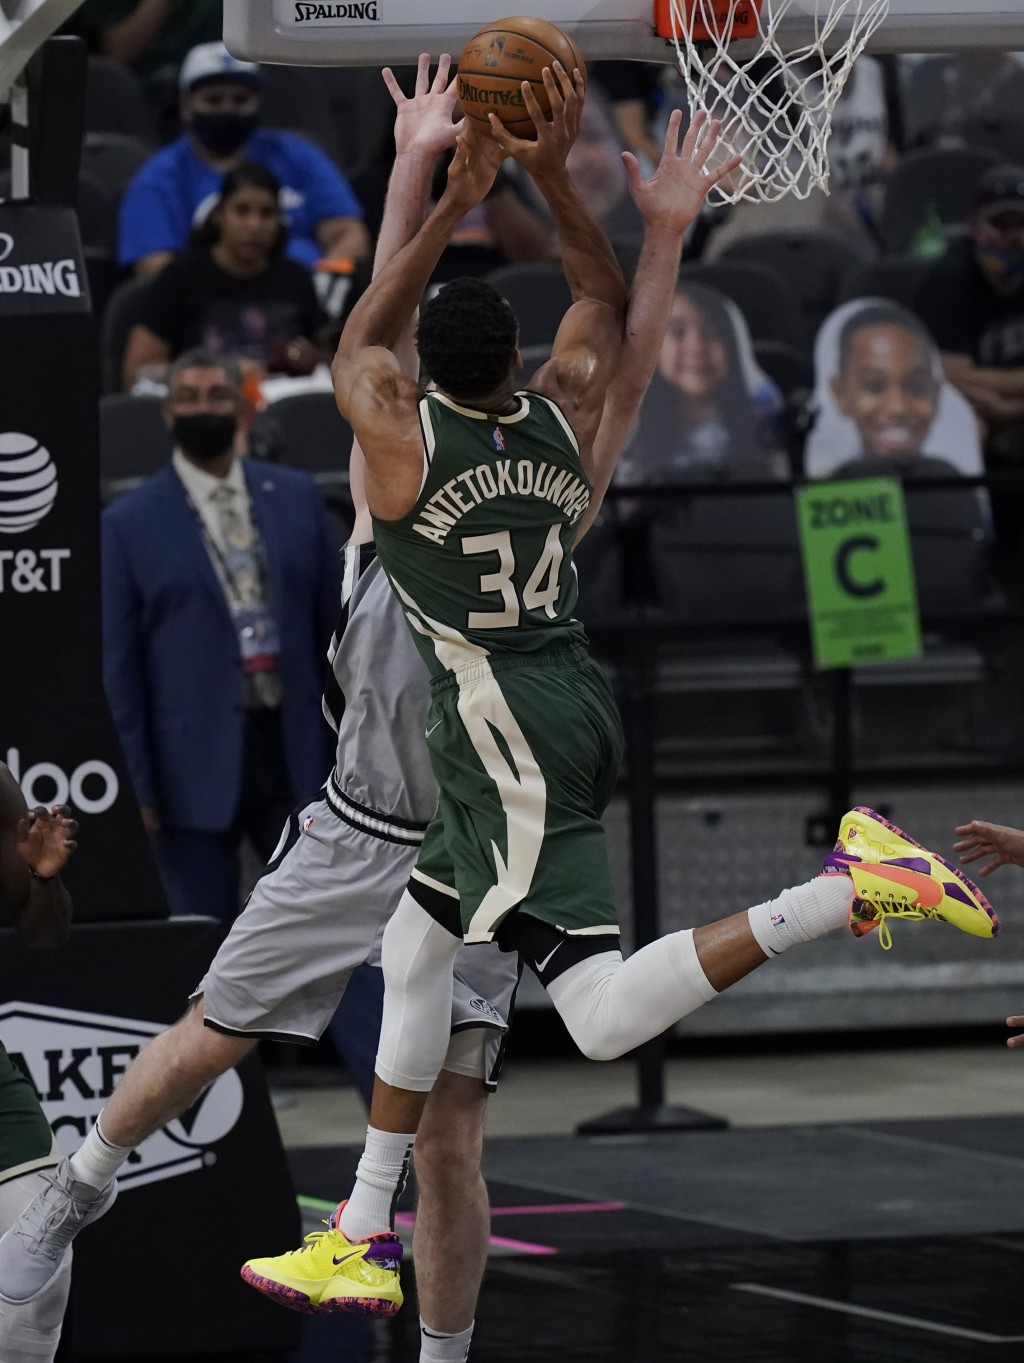 Milwaukee Bucks forward Giannis Antetokounmpo (34) is blocked as he tries to score against San Antonio Spurs center Jakob Poeltl during the second hal...